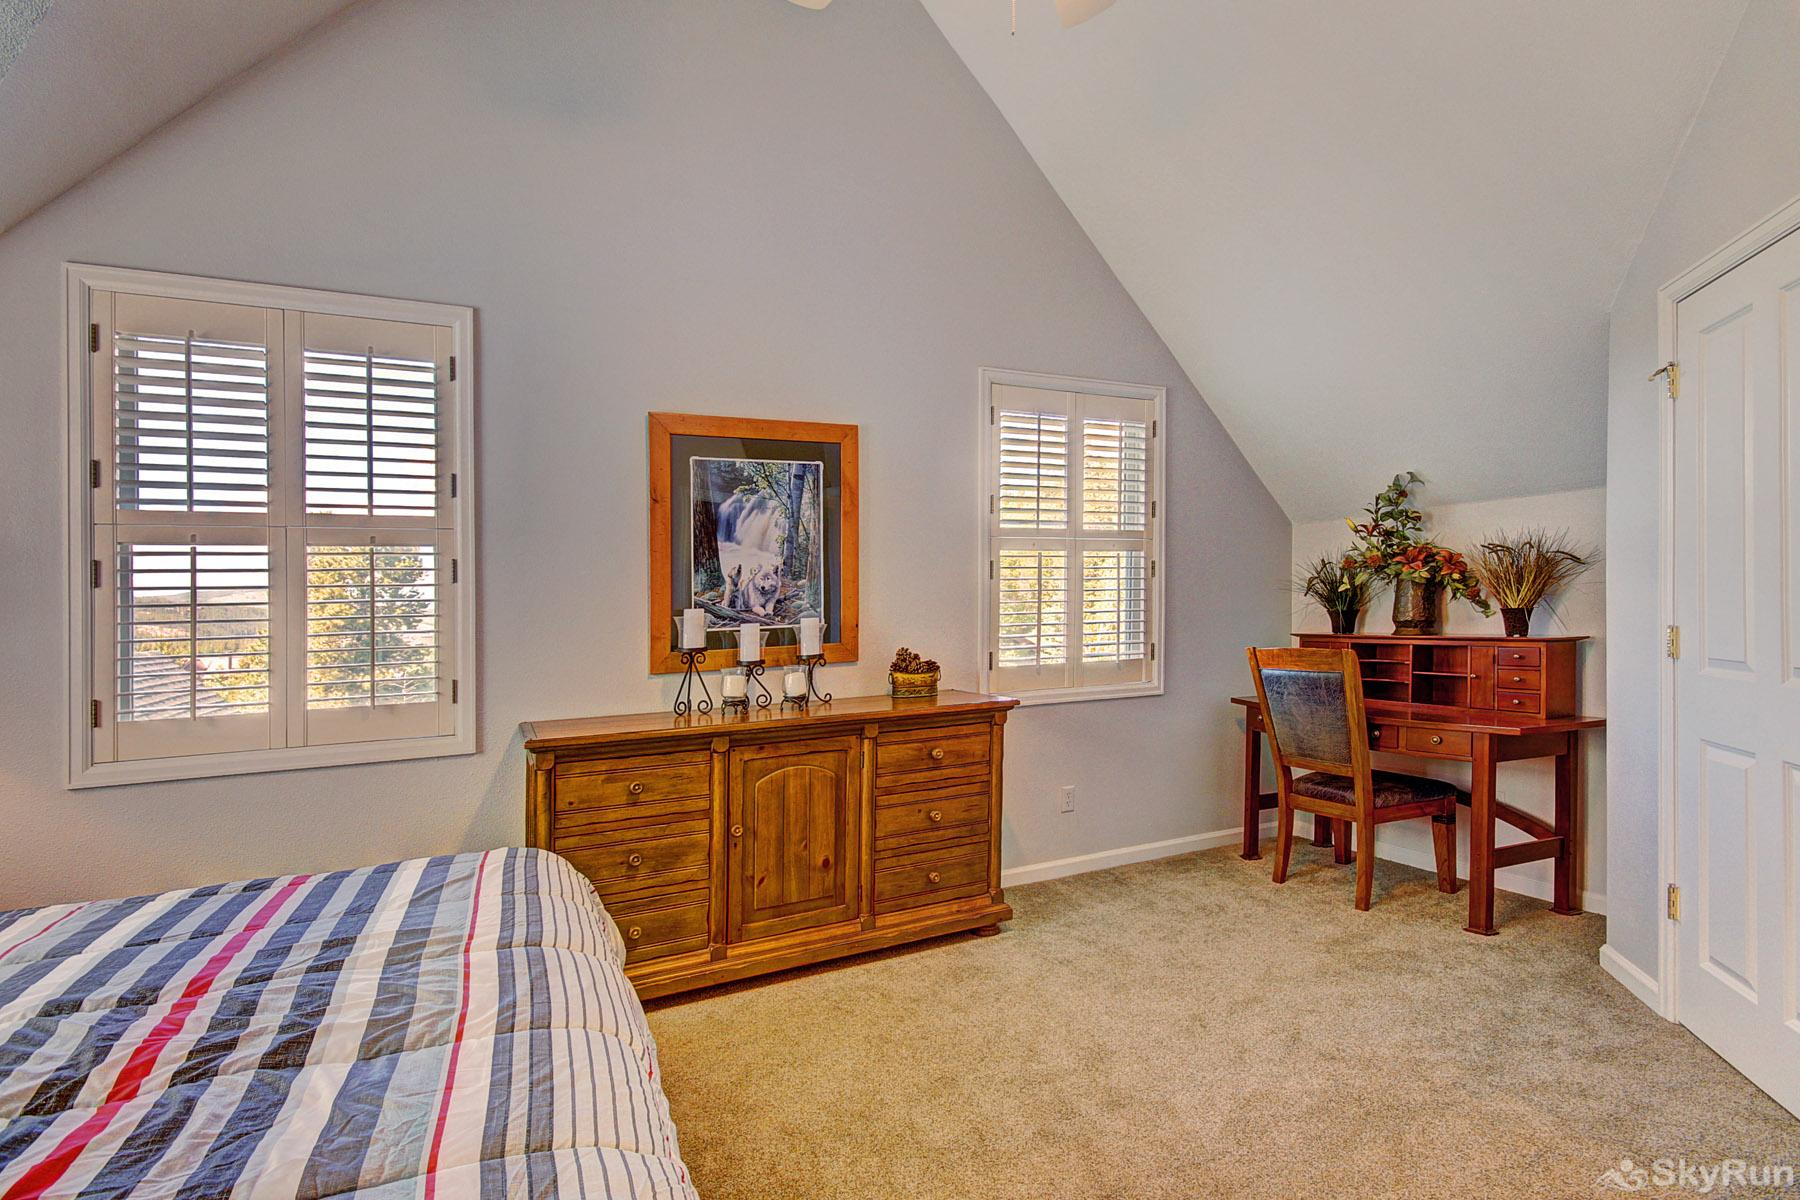 Bear Pine Chalet Spacious king master bedroom with desk for added convenience